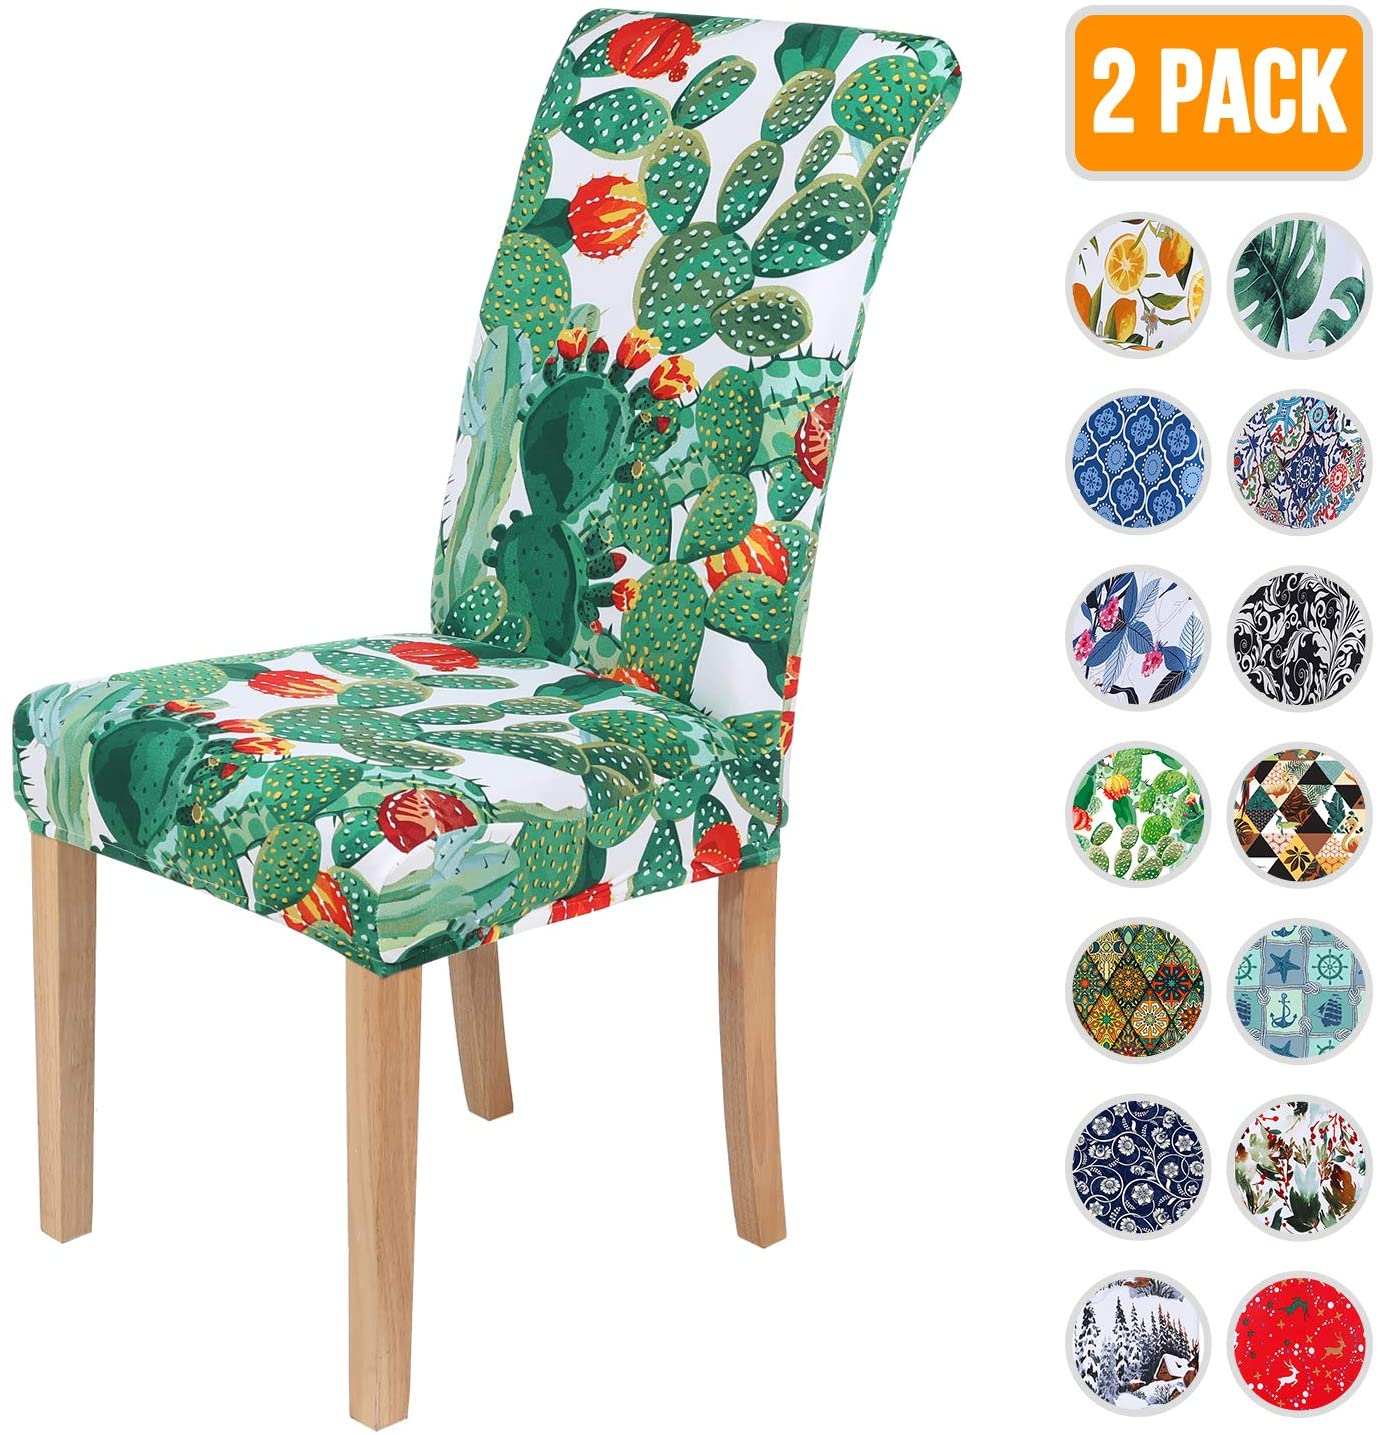 Colorxy Spandex Chair Covers for Dining Room Set of 2, Stretch Printed Chair Protectors Covers, Removable and Washable, Cactus